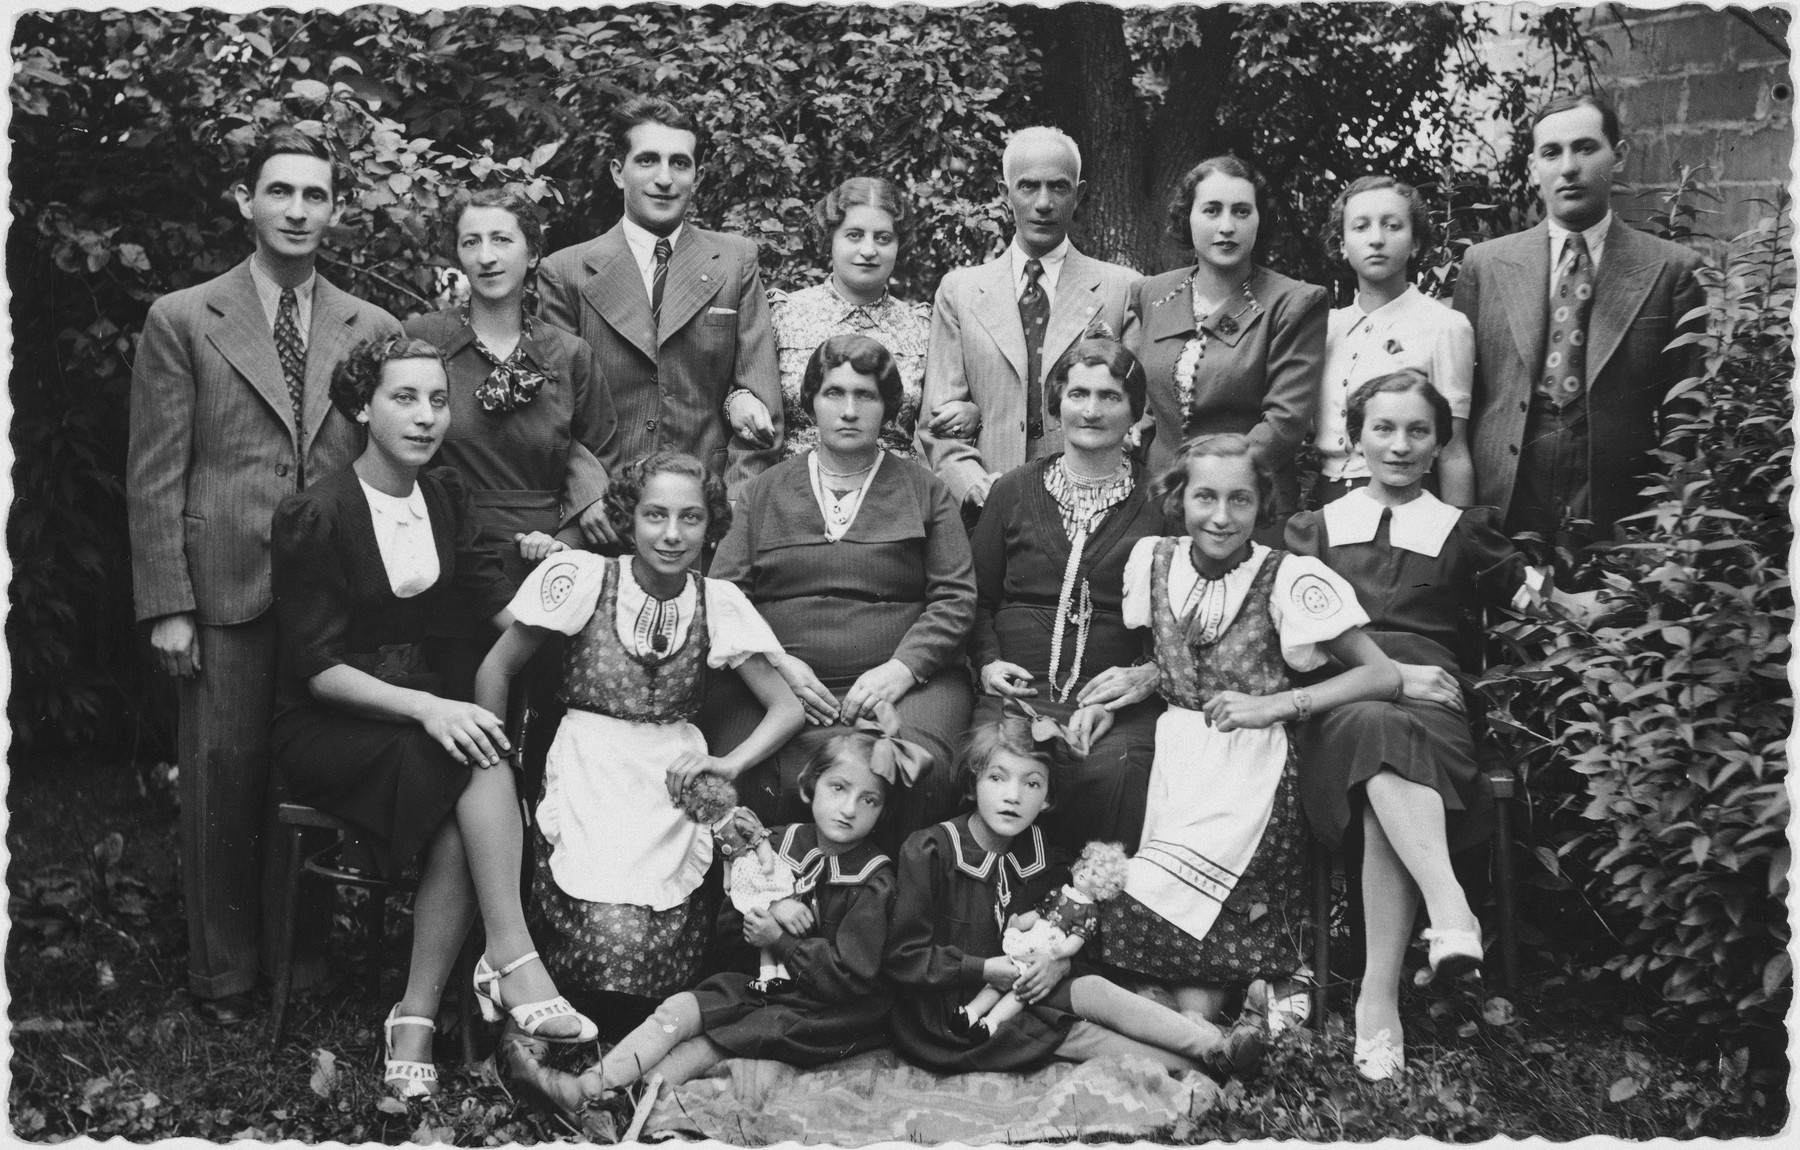 Group portrait of an extended Jewish family in Rymanow, Poland.